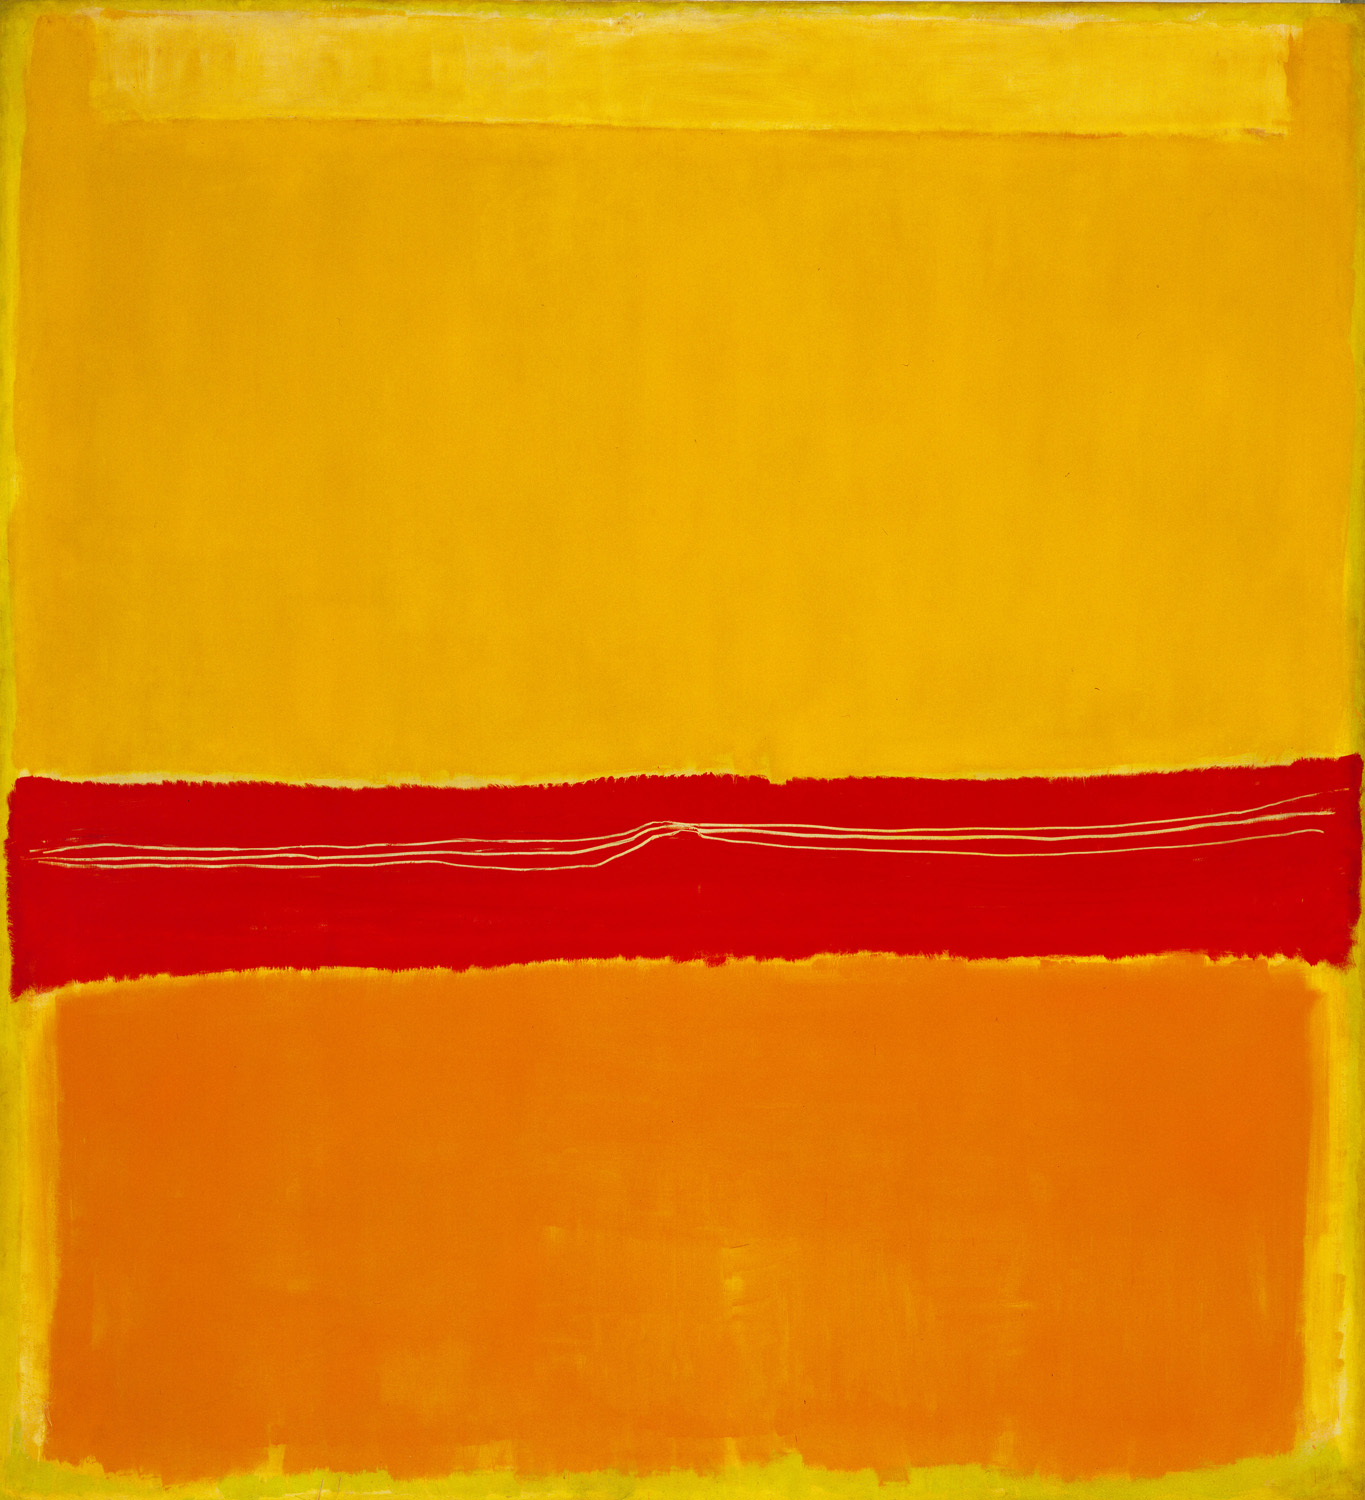 Mark Rothko 1903 1970 In Their Manifesto The New York Times And A Fellow Artist Gottlieb Had Written We Favor Simple Expression Of